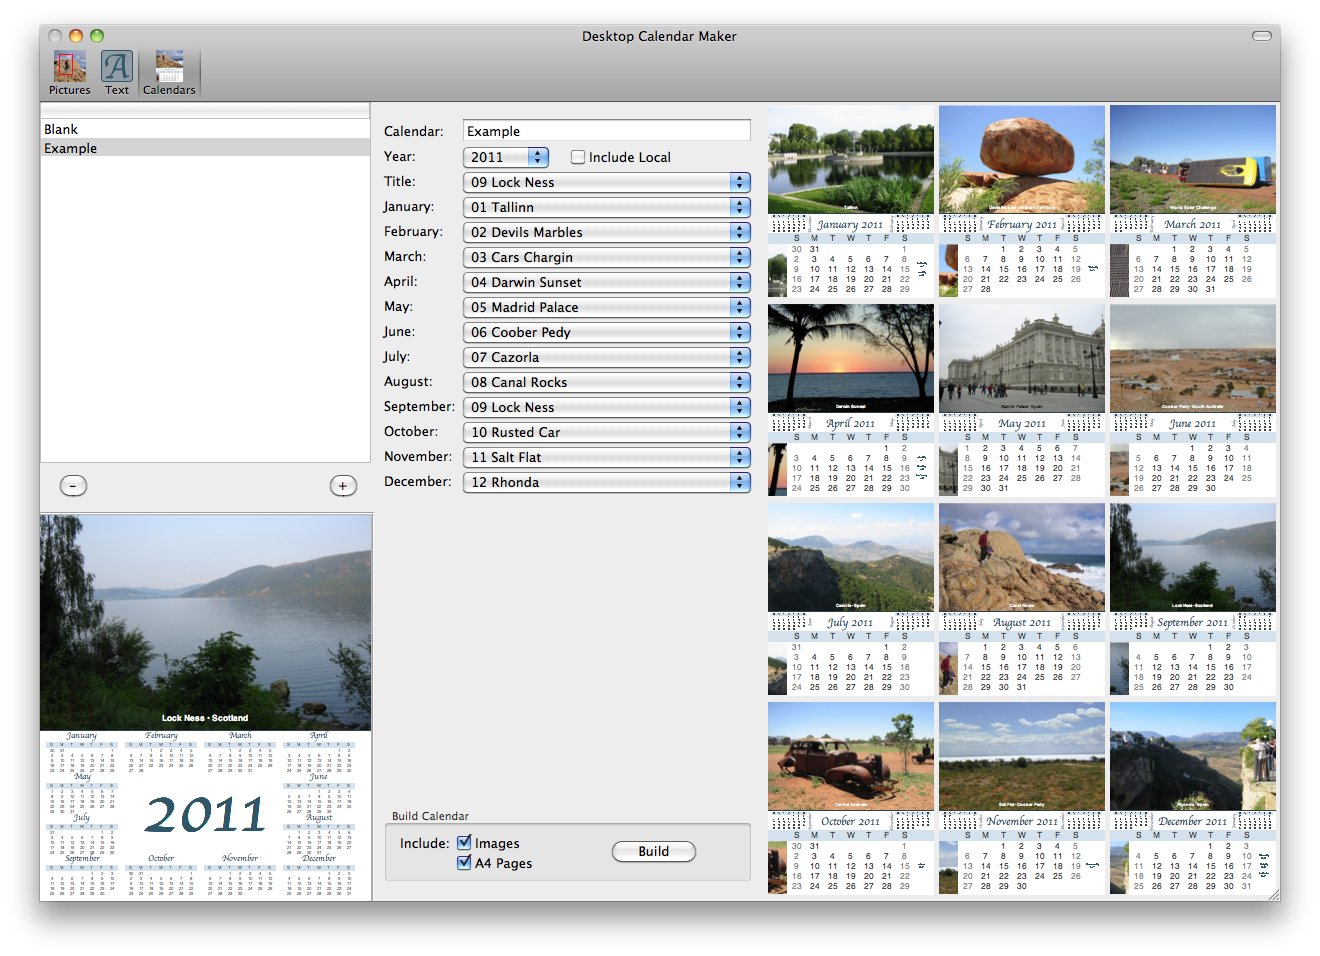 Stairways Software: Desktop Calendar Maker